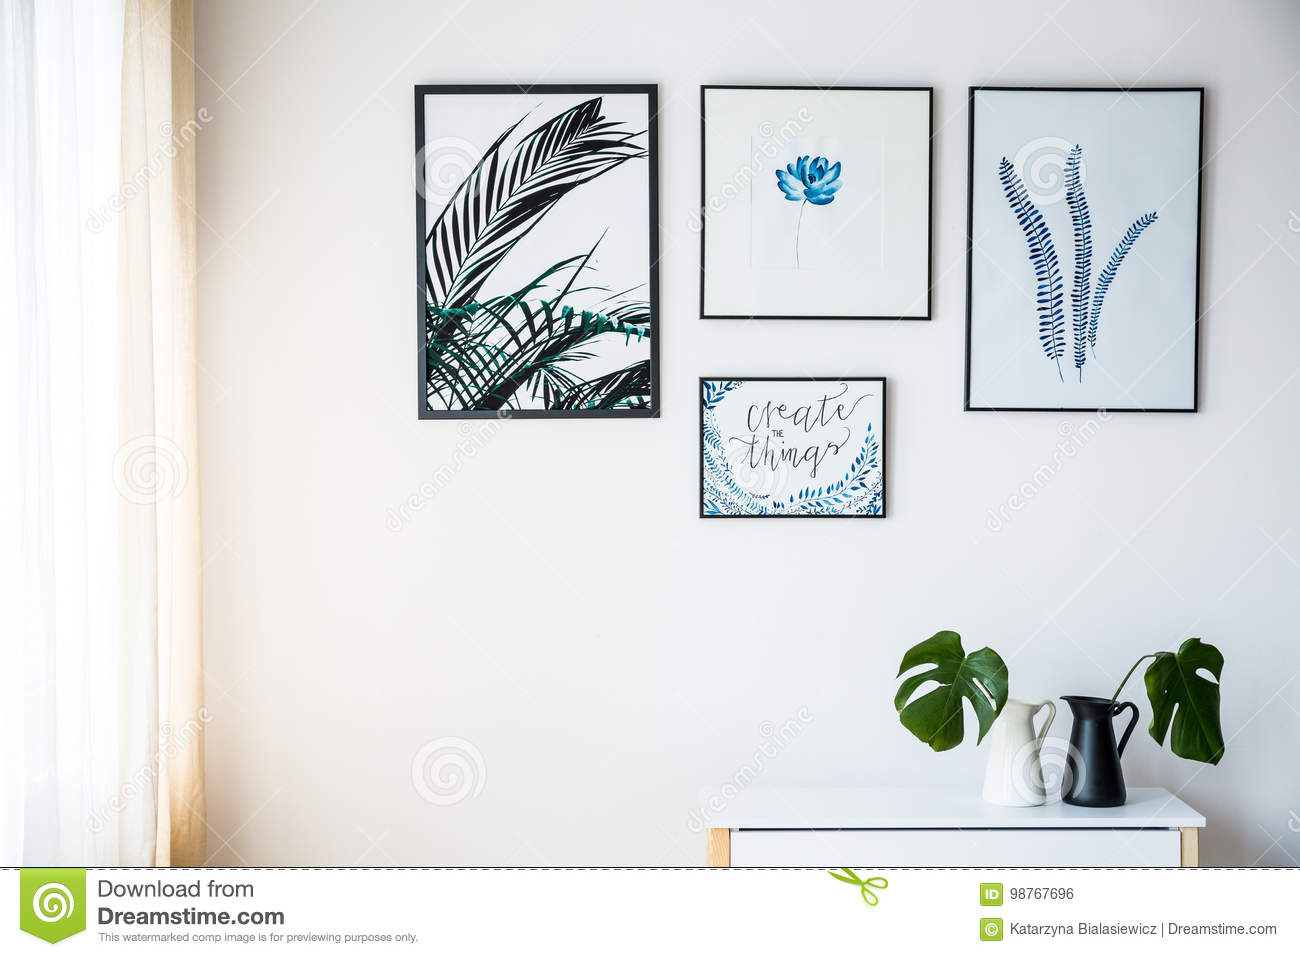 Pictures with plants motif